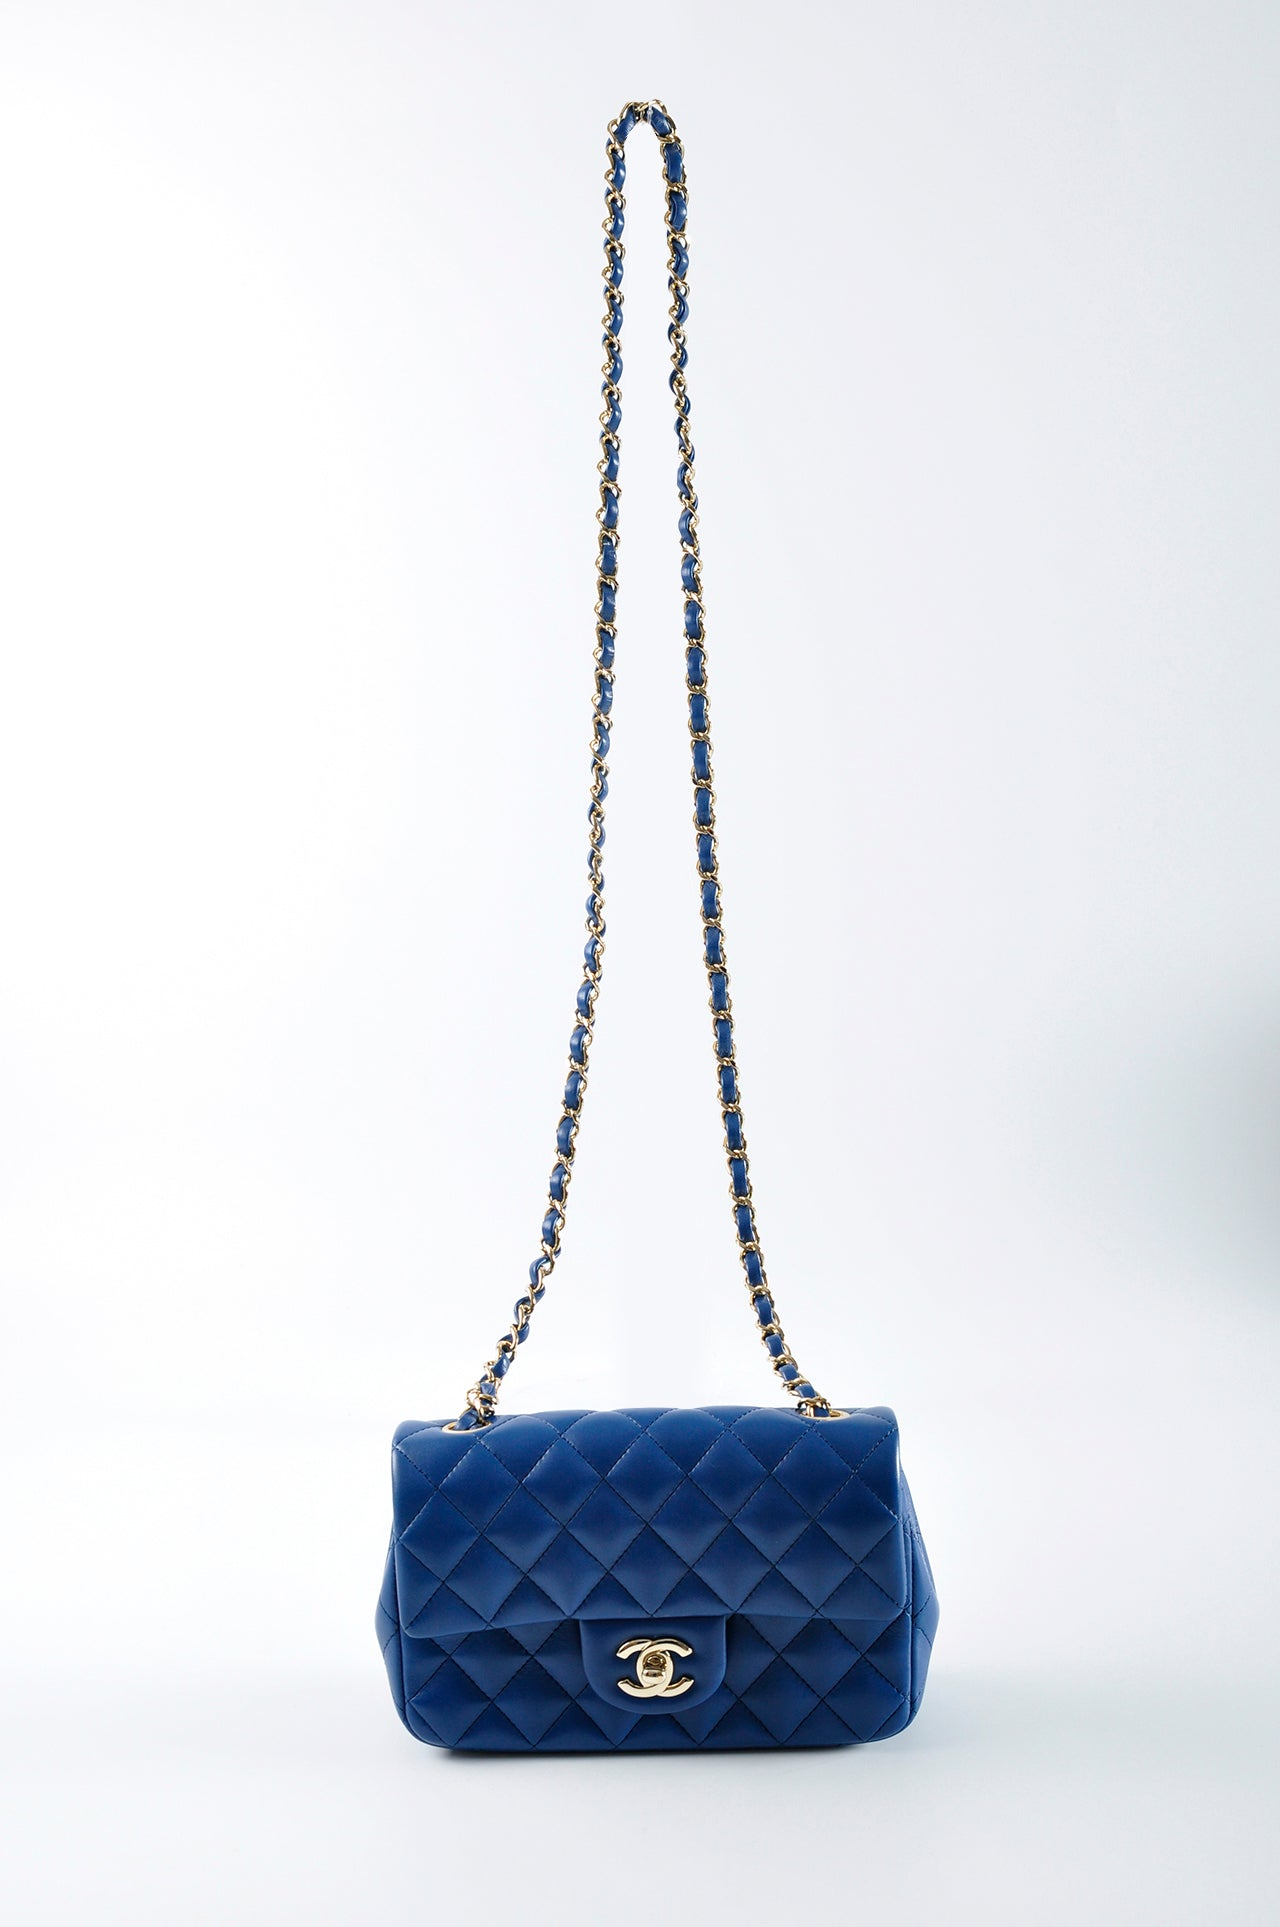 Chanel Lambskin Quilted Rectangular Mini Flap Dark Blue GHW 25087540 - Glampot